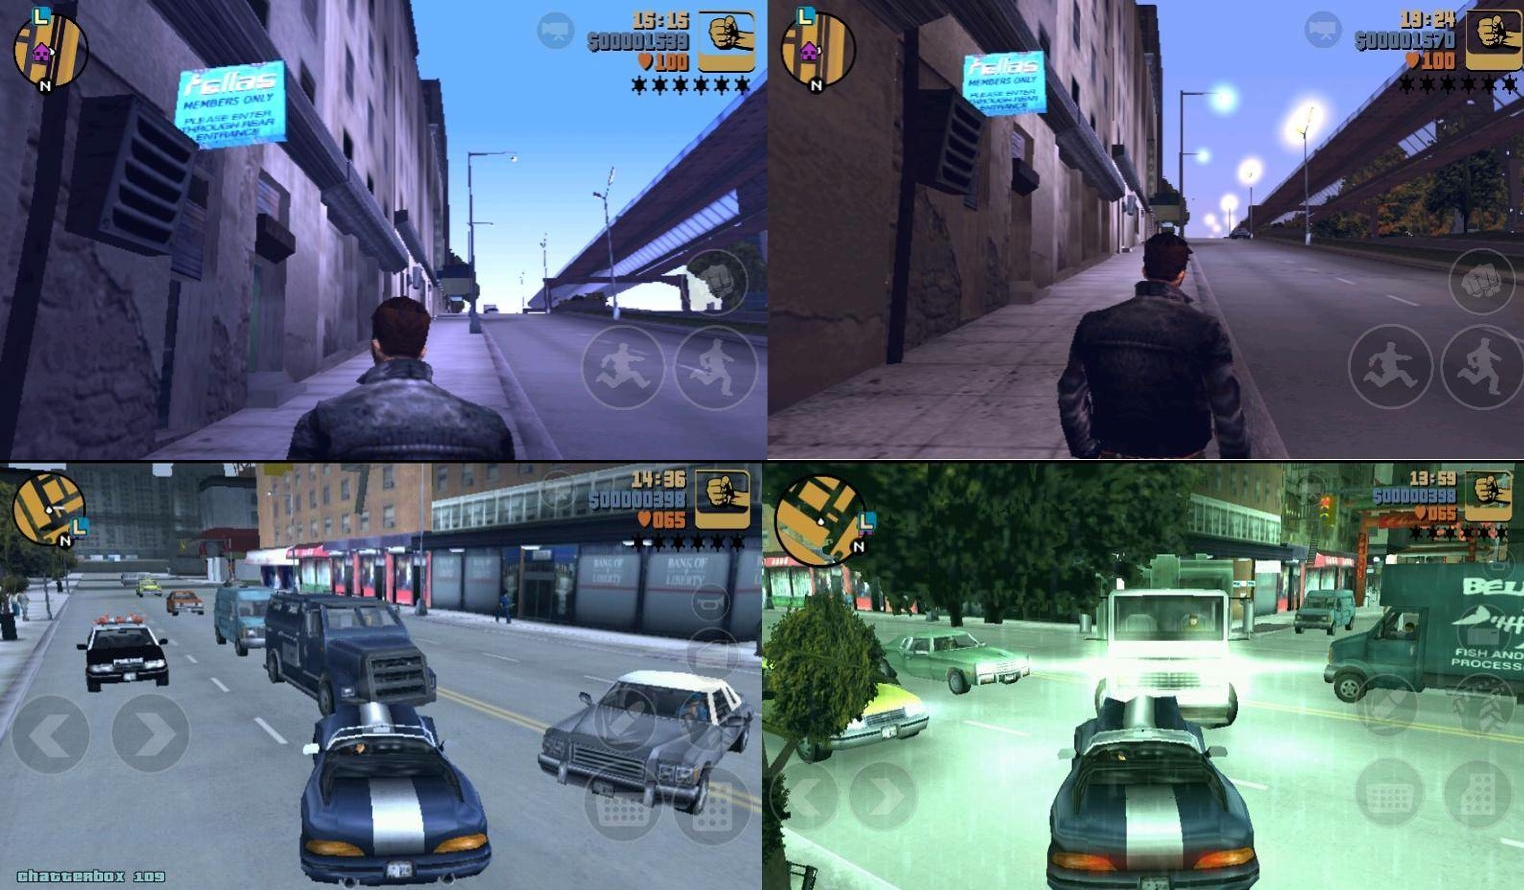 APK Android Free For GTA 3 [apk+data] New 2013 and 2014 Apk Android